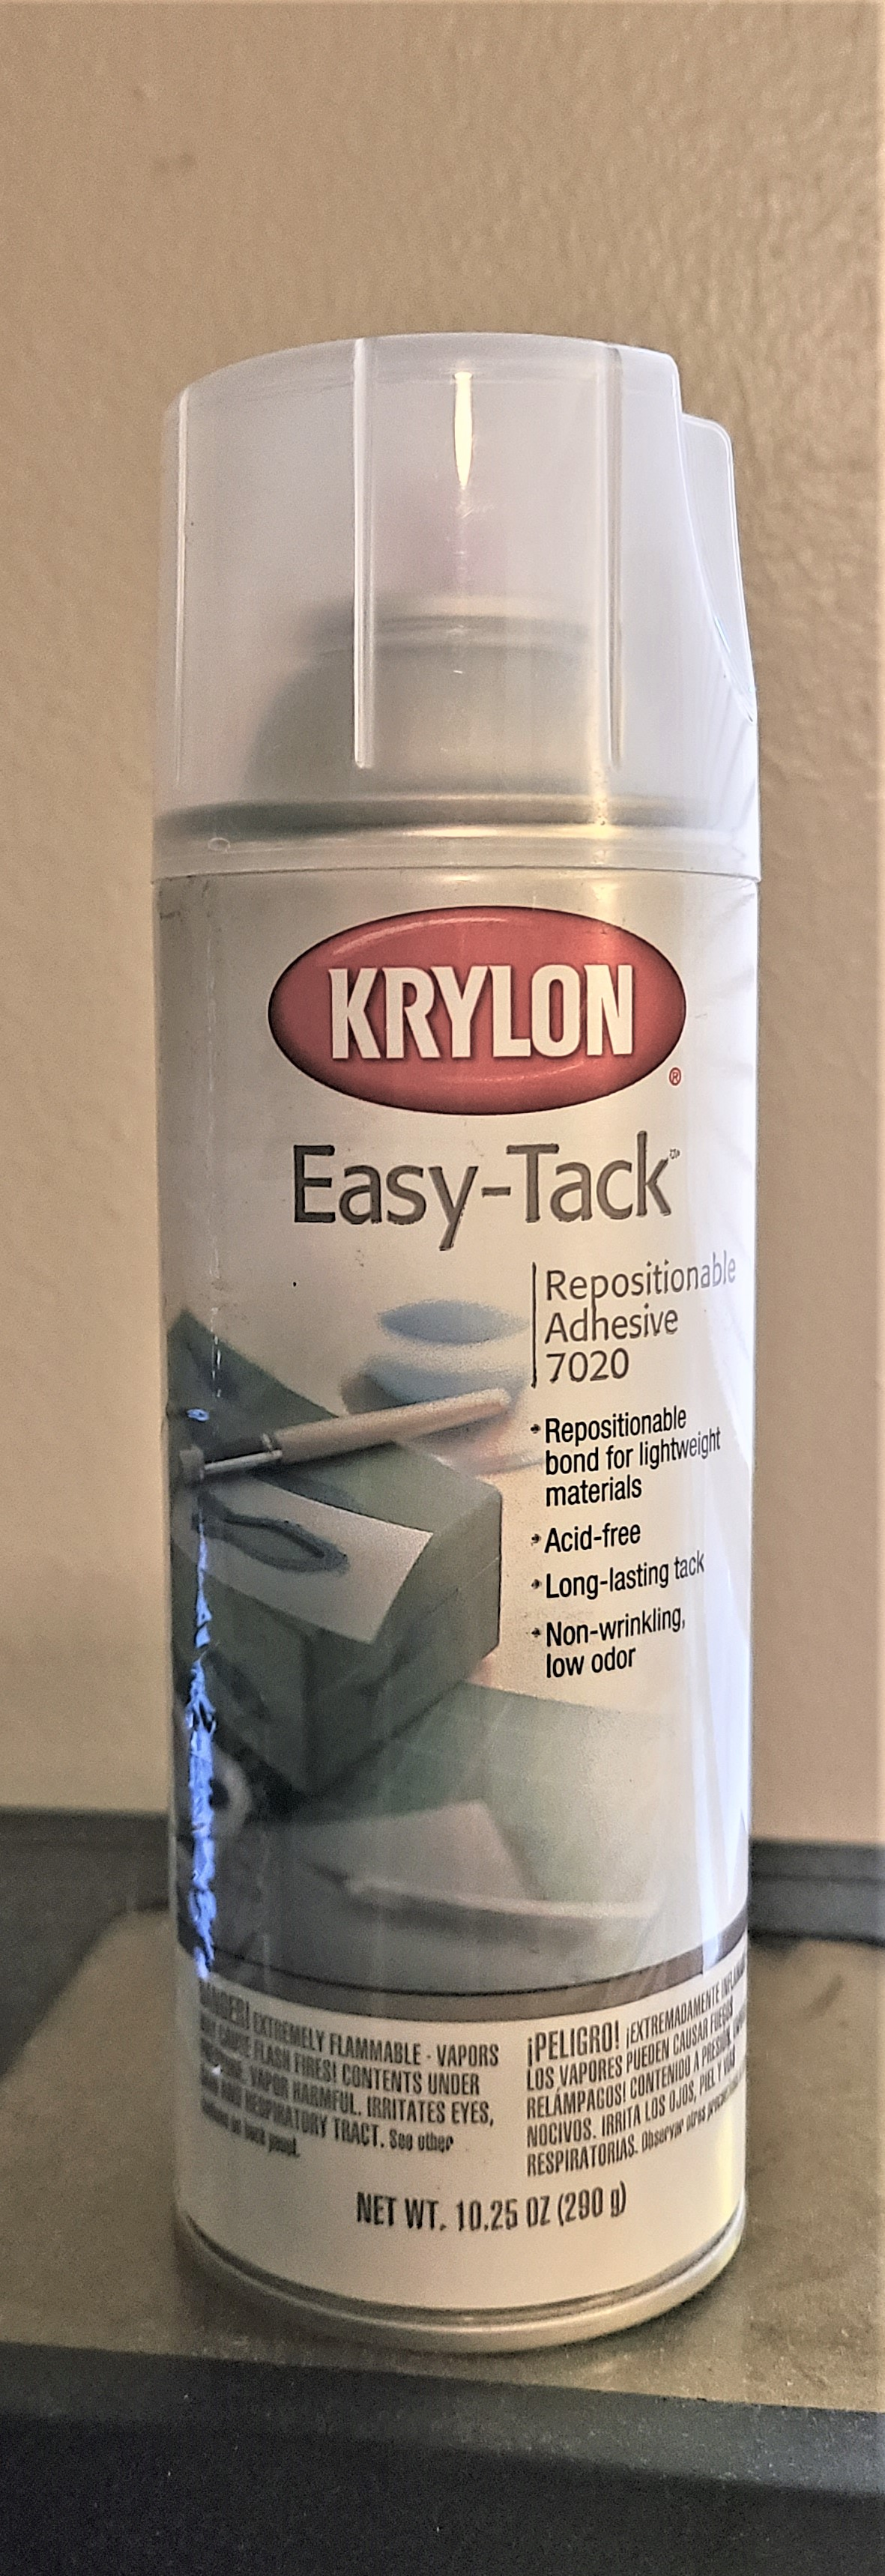 Easy-Tack